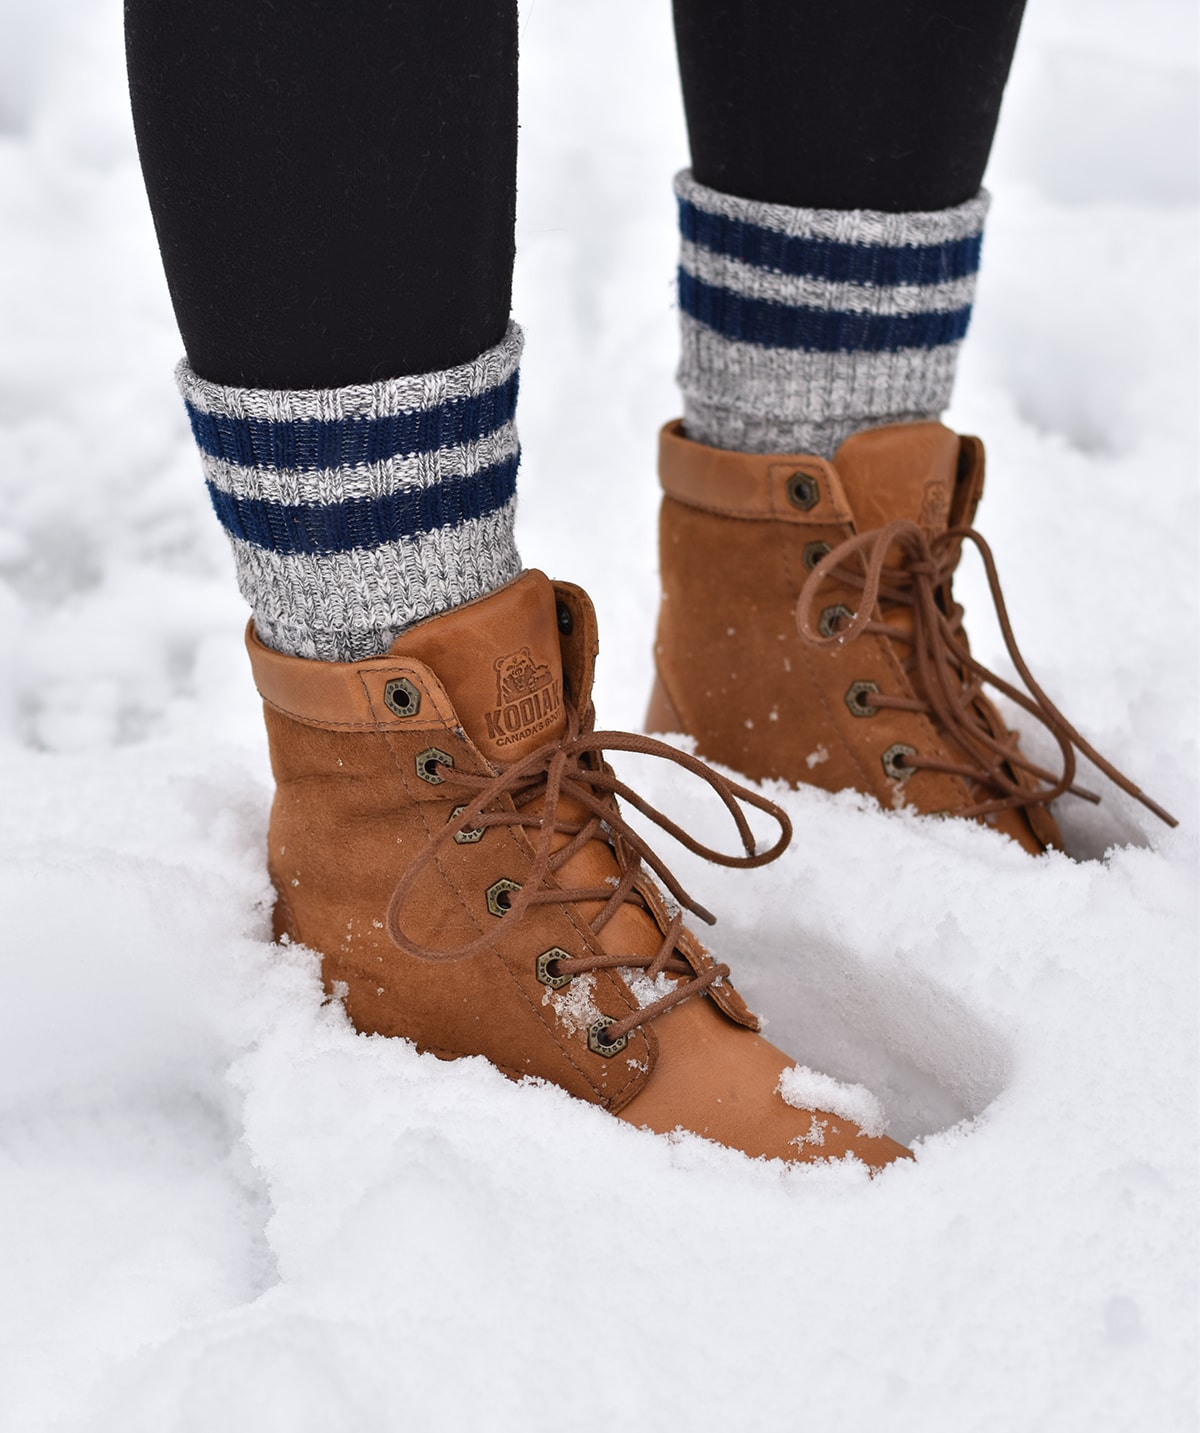 In LOVE with these Kodiak boots for winter! Union Jack Boots has several gorgeous pairs to choose from... it was a hard decision!